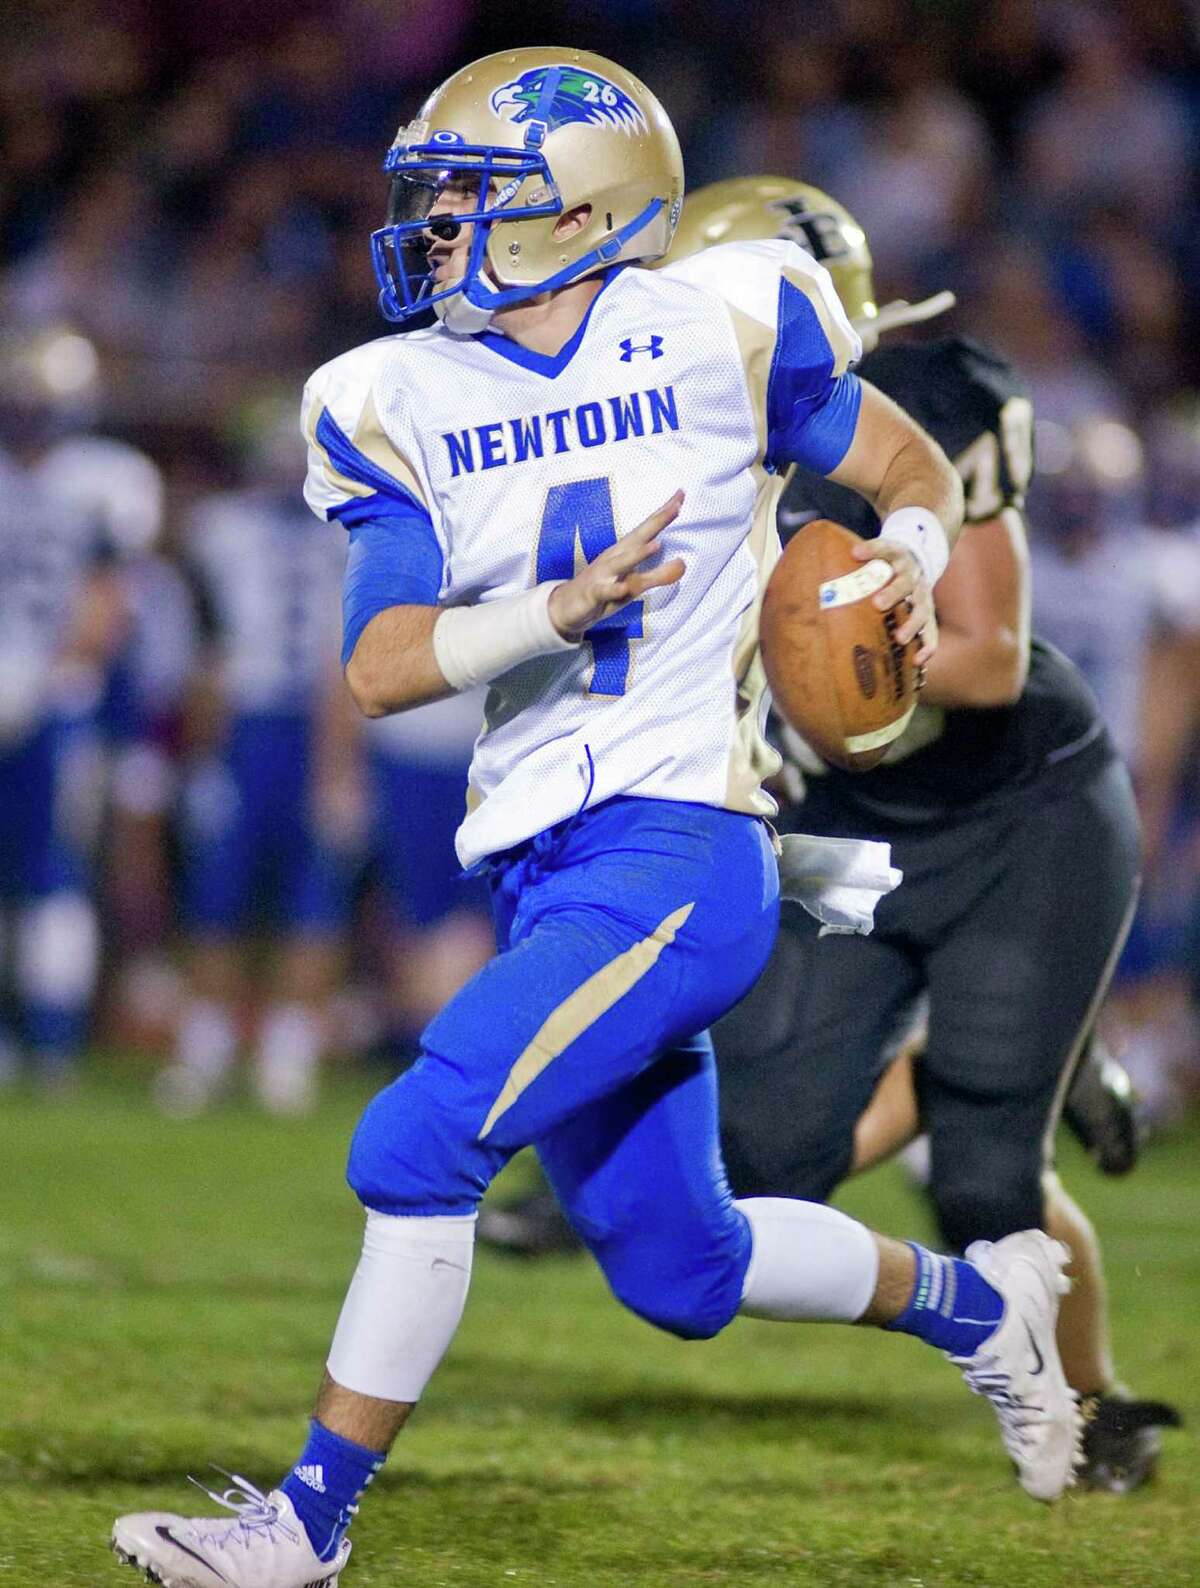 Newtown High School quarterback Andrew Tarantino looks for a receiver during a game against Joel Barlow, played at Joel Barlow High School. Friday, Oct. 4, 2013